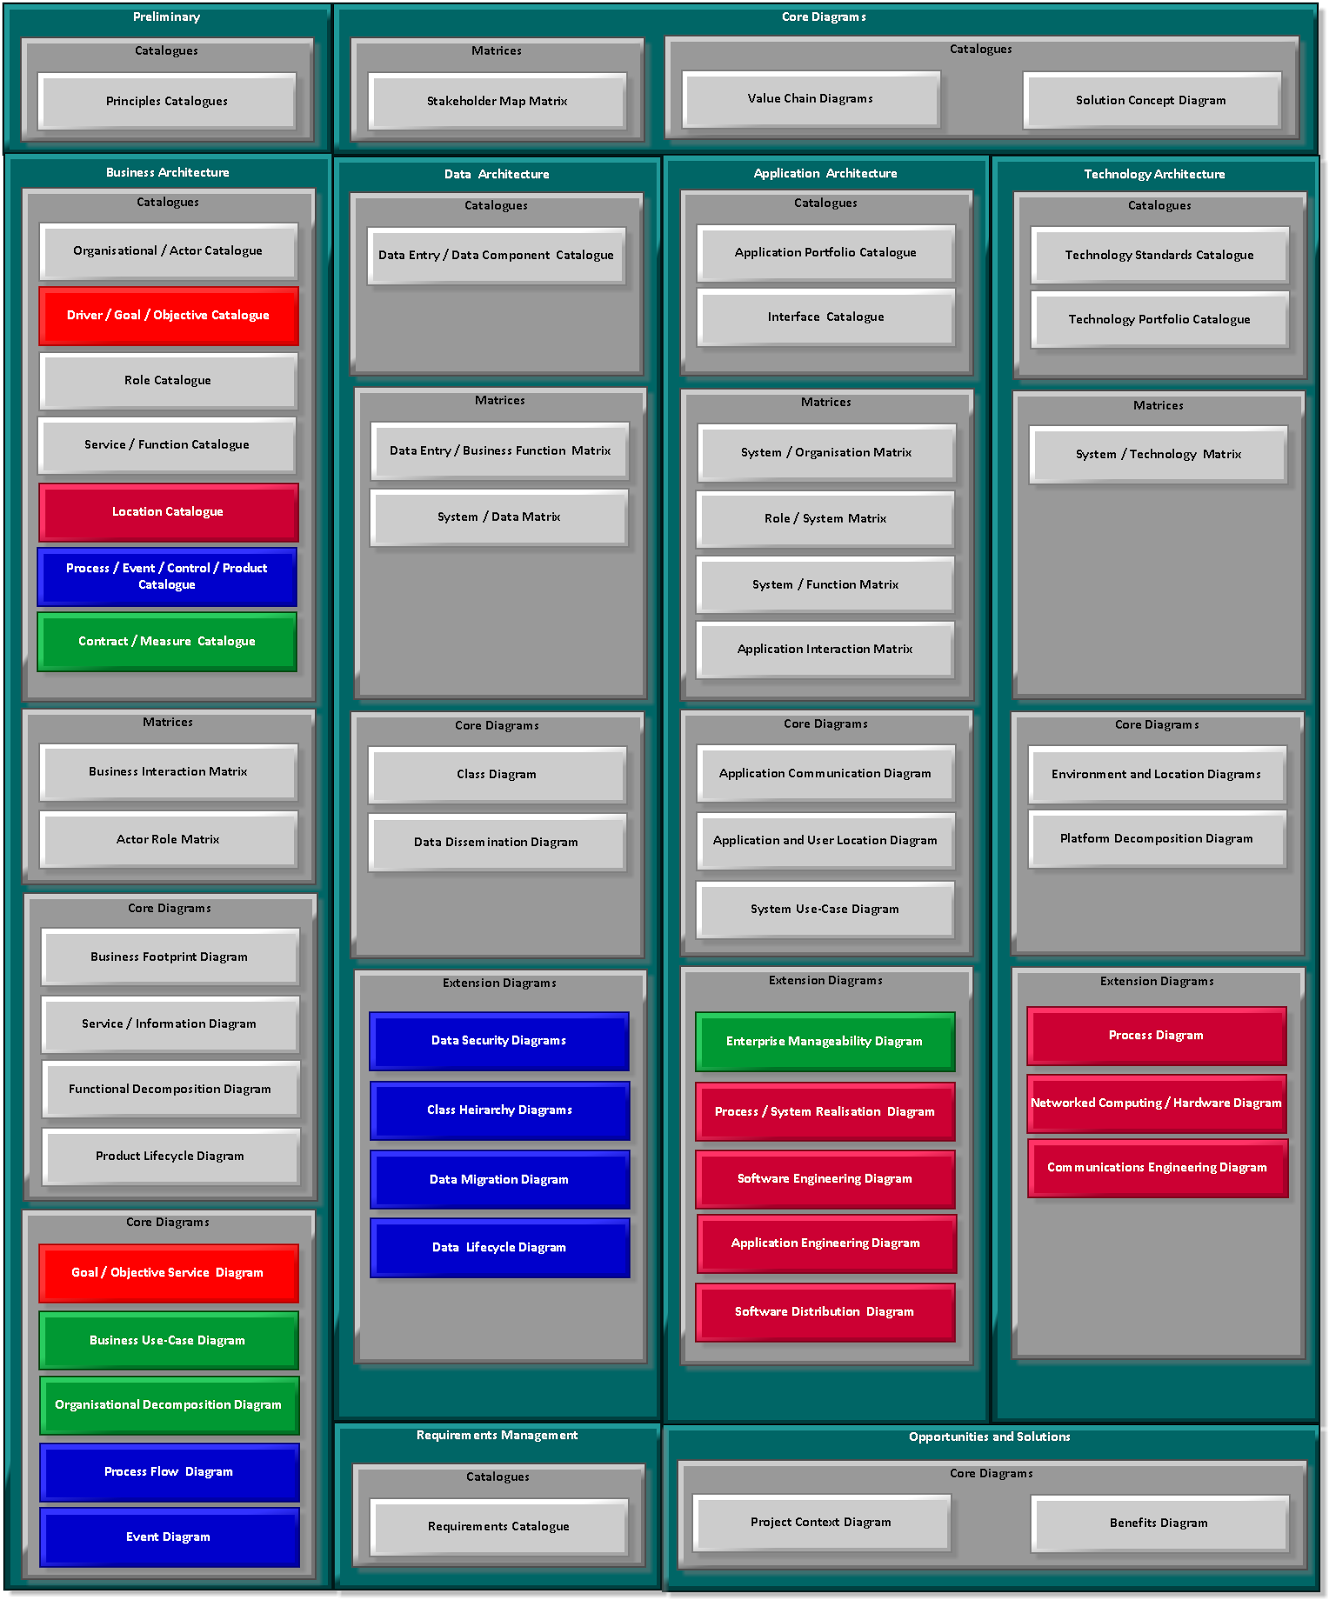 The Diagram Above Is Based On TOGAF Core Content Metamodel And Extensions Method I Have Used As A Program Repository That Provides